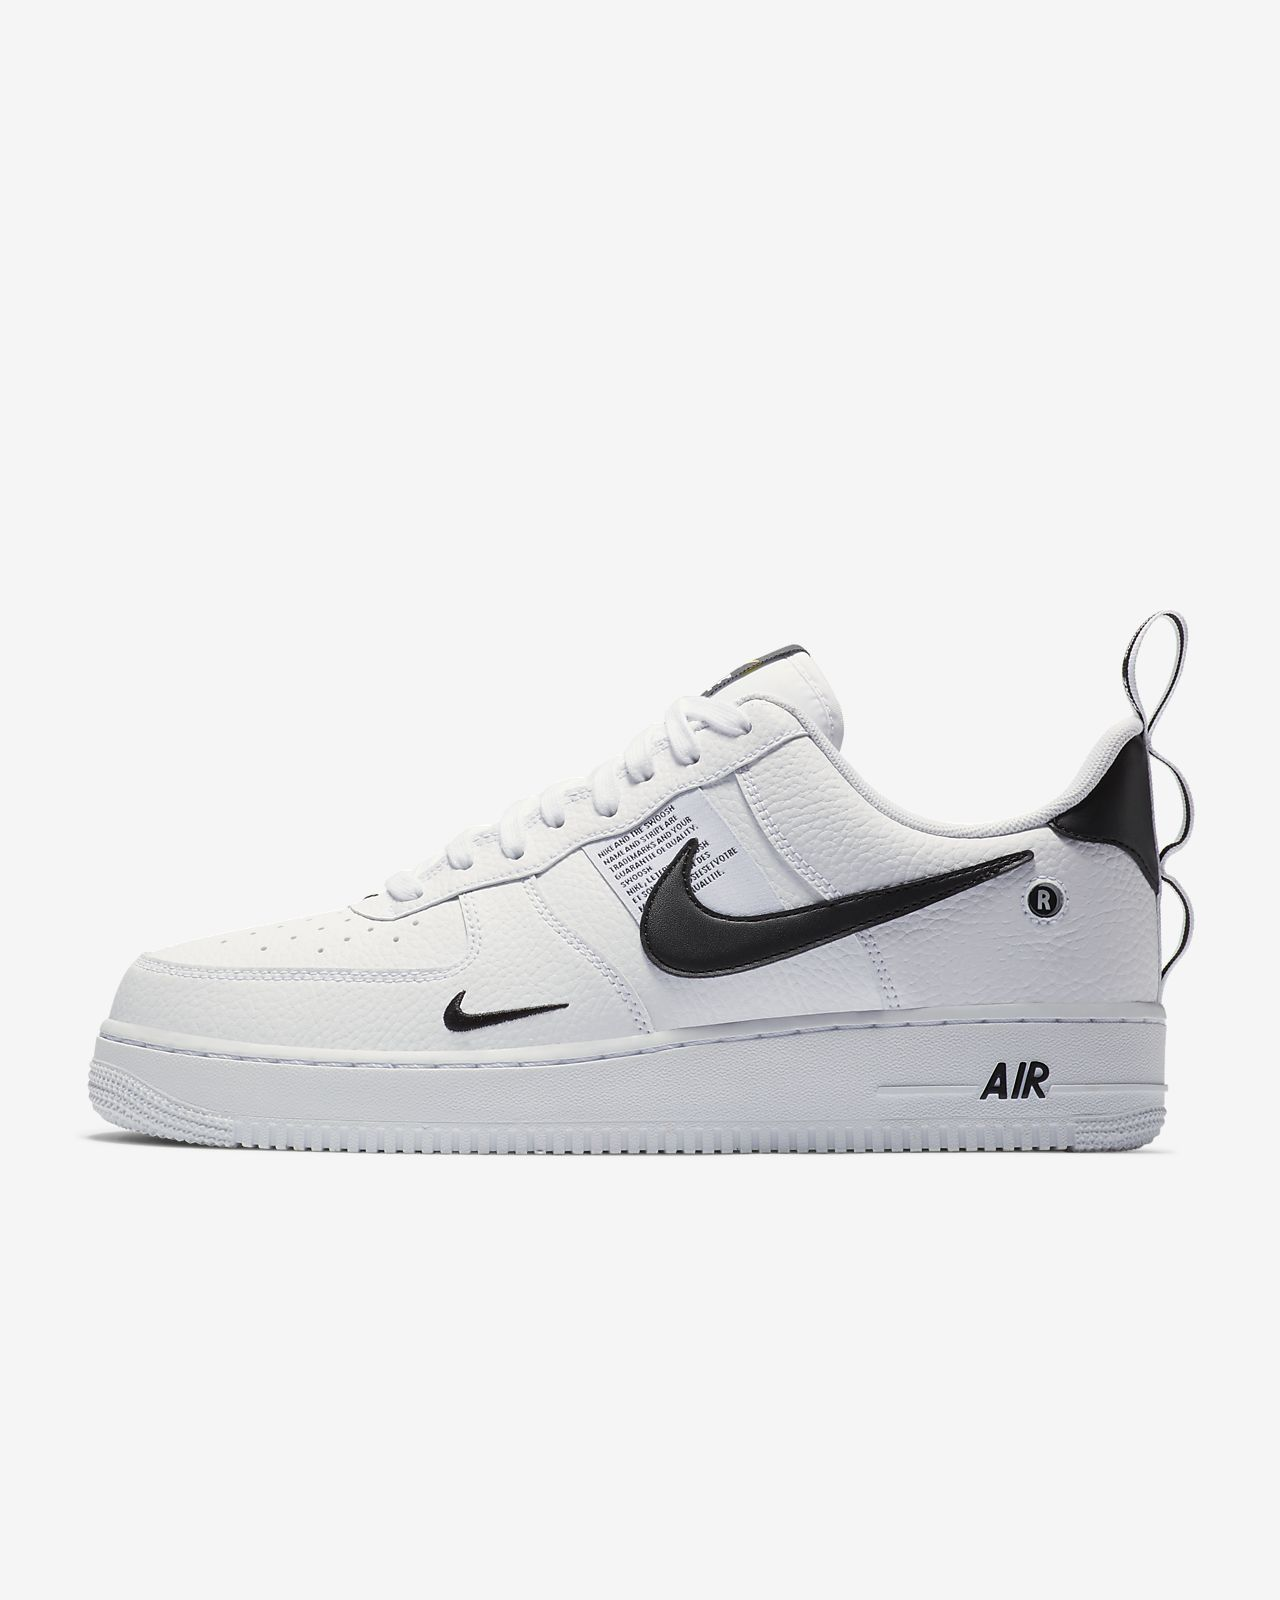 475fe68f037c Nike Air Force 1  07 LV8 Utility Men s Shoe. Nike.com NL